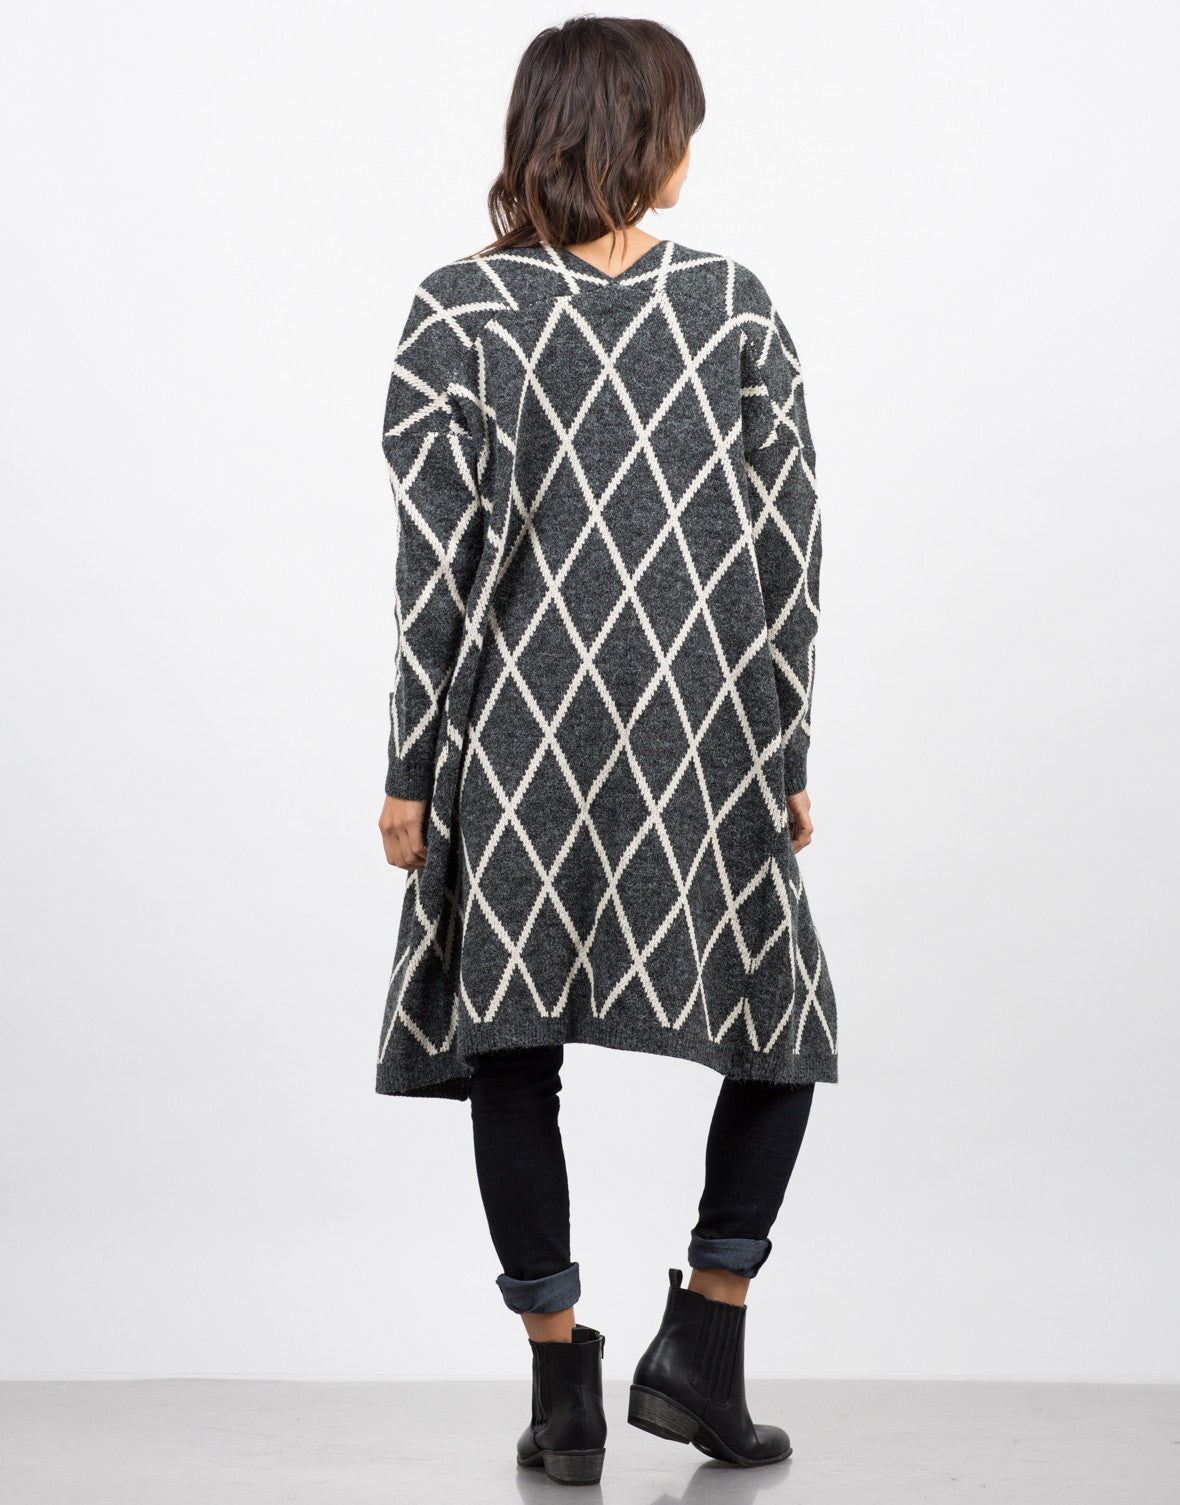 Back View of Fenced Sweater Cardigan